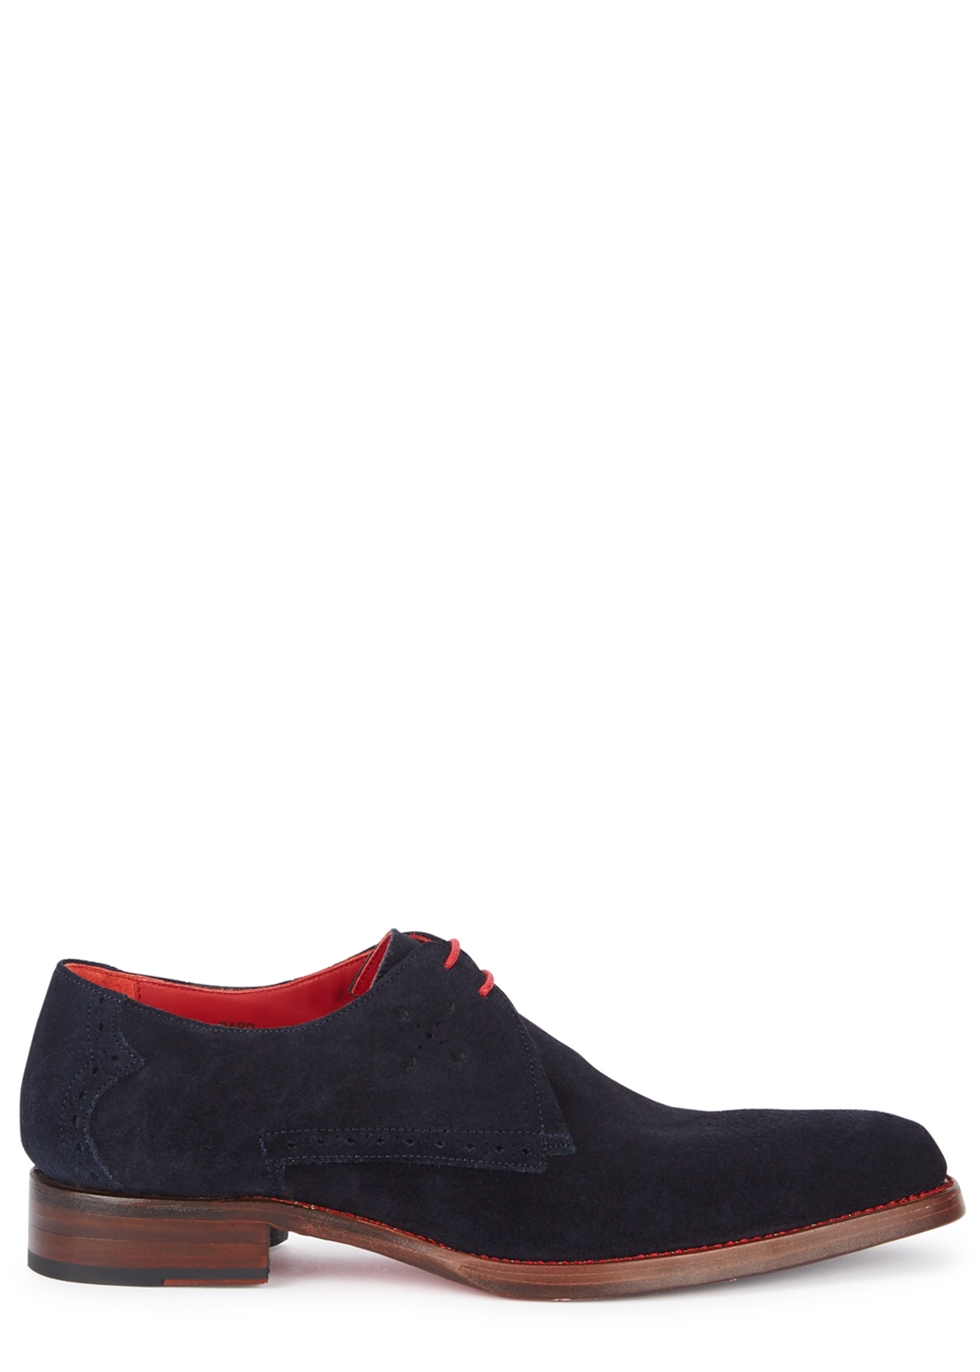 JEFFERY WEST Barb Navy Suede Derby Shoes